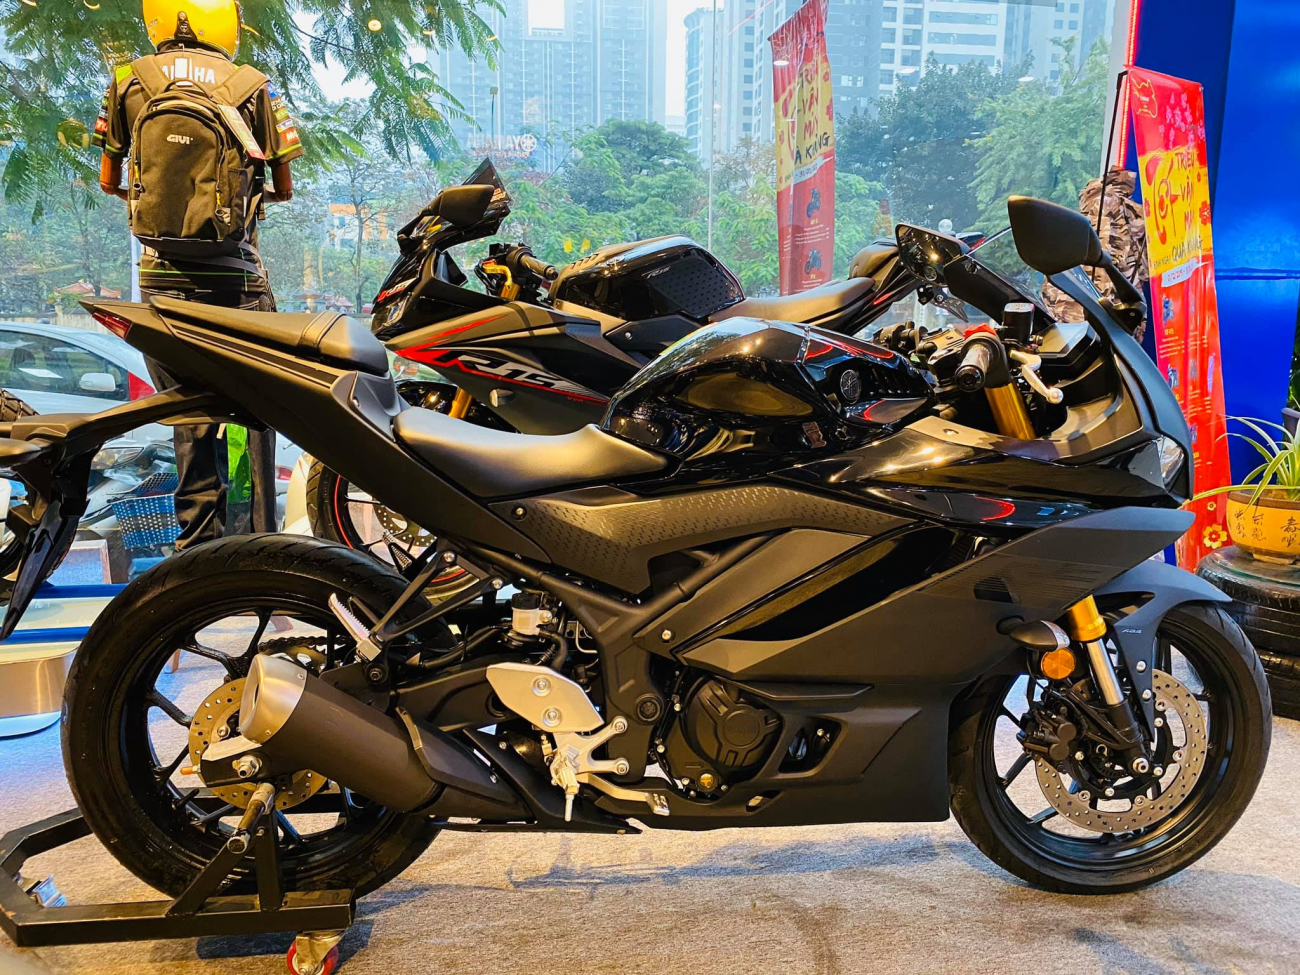 Yamaha R3 2020 nhap khau tu nhan co gia ban gay soc so voi R3 the he cu - 3